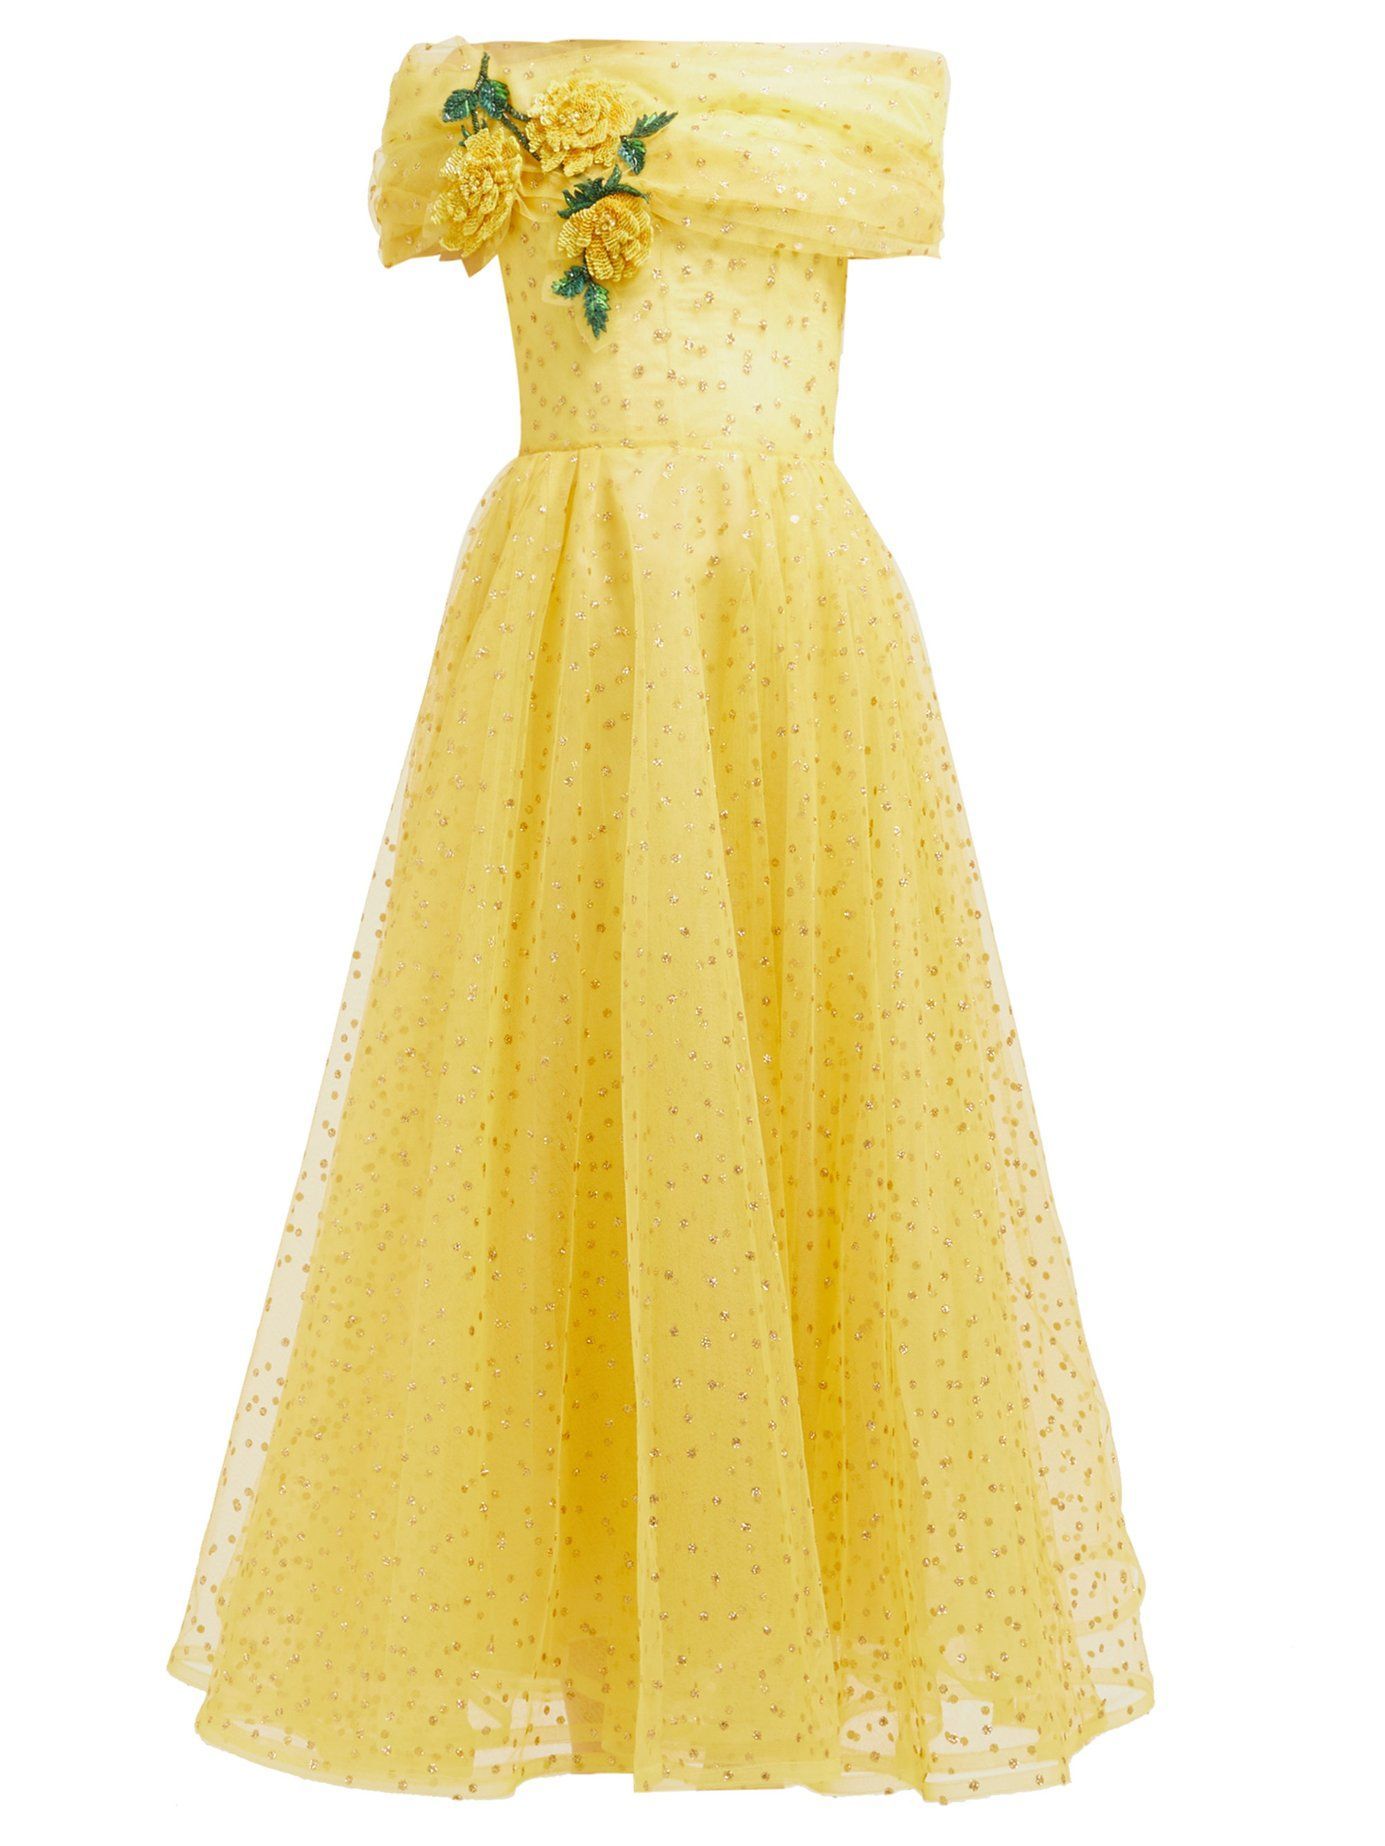 Floral Applique Polka Dot Tulle Gown Rodarte Matchesfashion Us Yellow Prom Dress Long Tulle Gown Fancy Dresses [ 1846 x 1385 Pixel ]